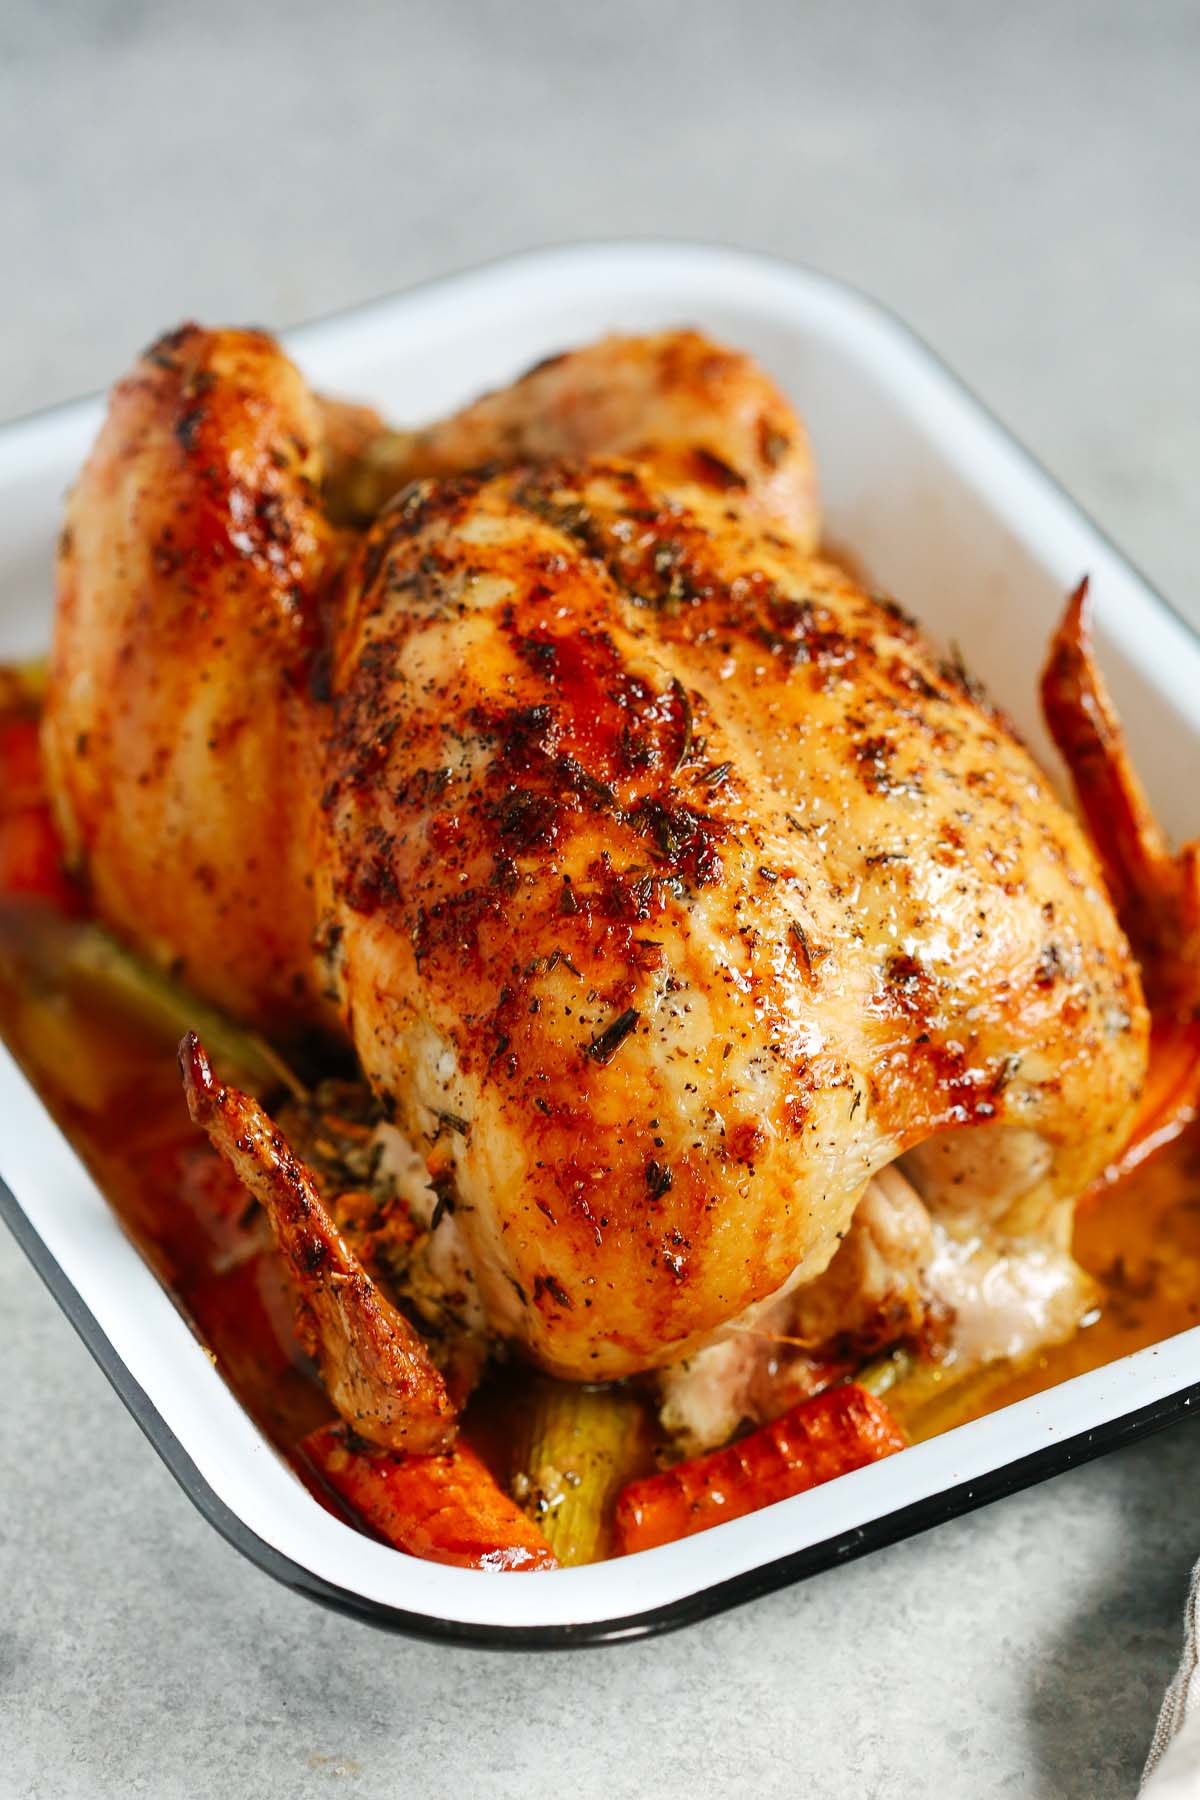 Photo of a garlic herb butter roast chicken inside of a white roasting pan.